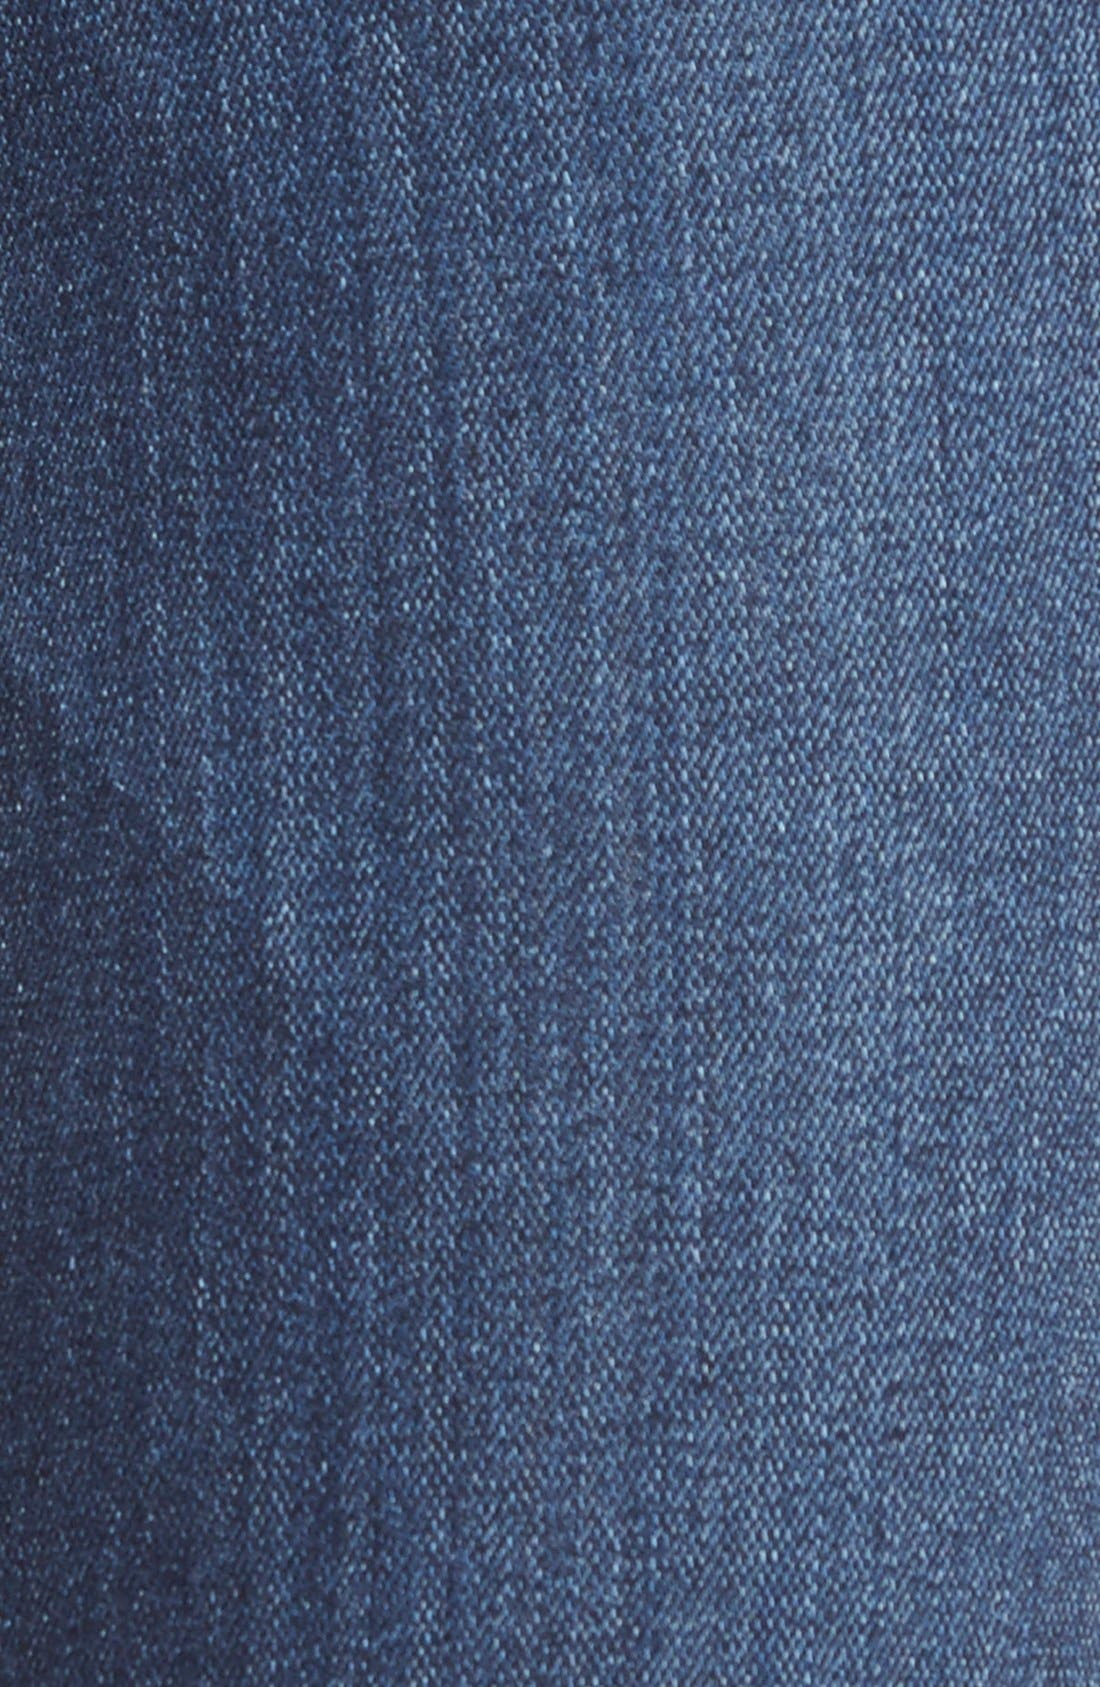 Alternate Image 5  - Paige Denim 'Skyline' Ankle Peg Jeans (Elia Deconstructed)